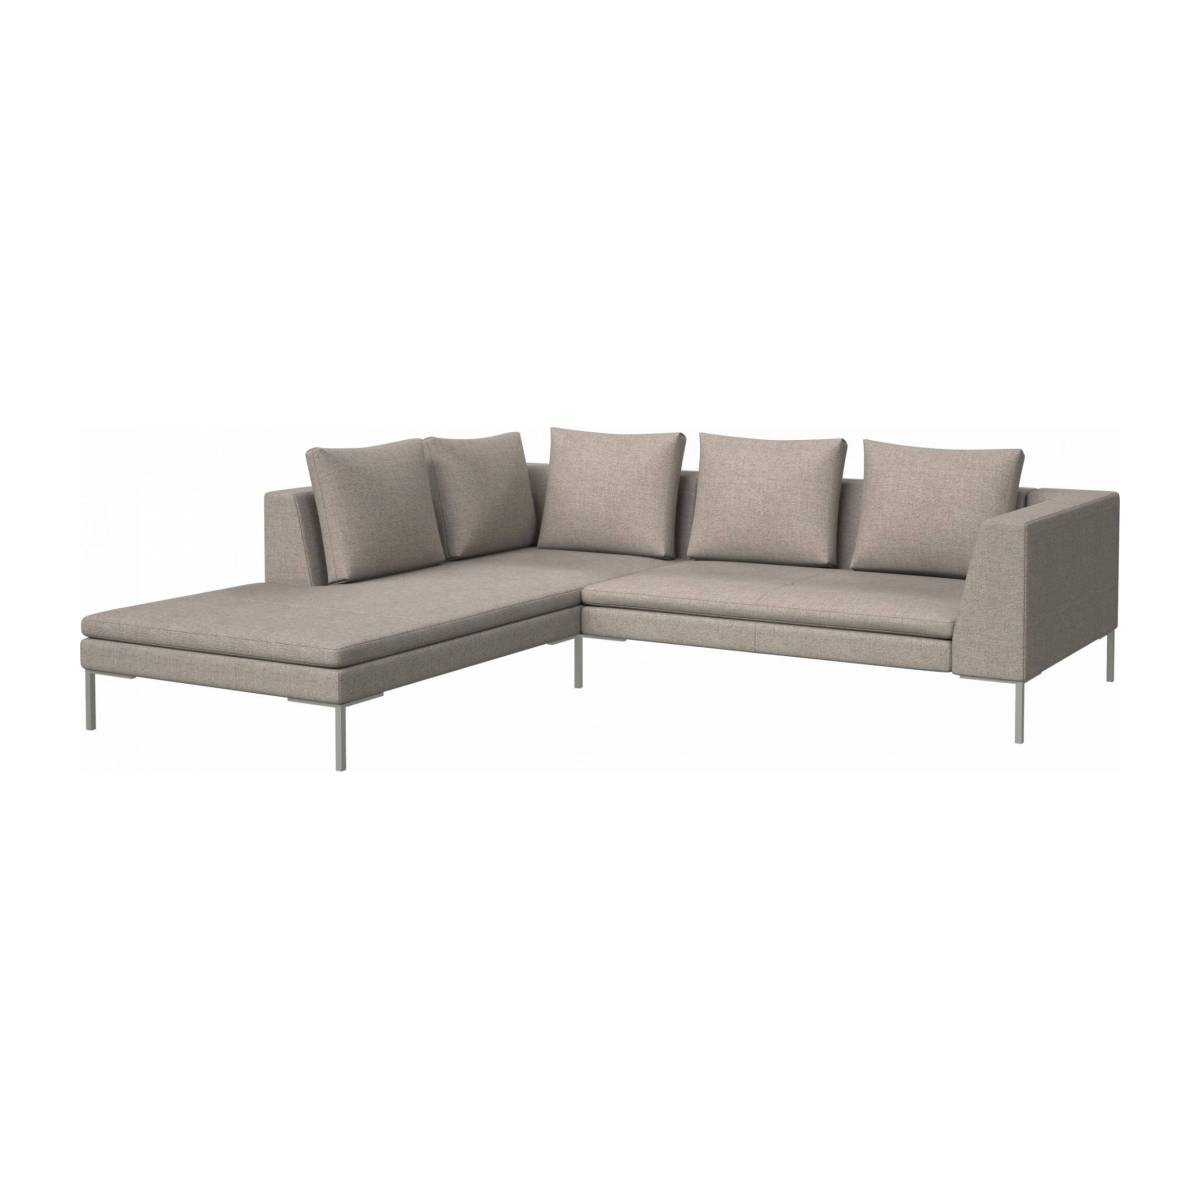 2 seater sofa with chaise longue on the left in Lecce fabric, nature  n°2